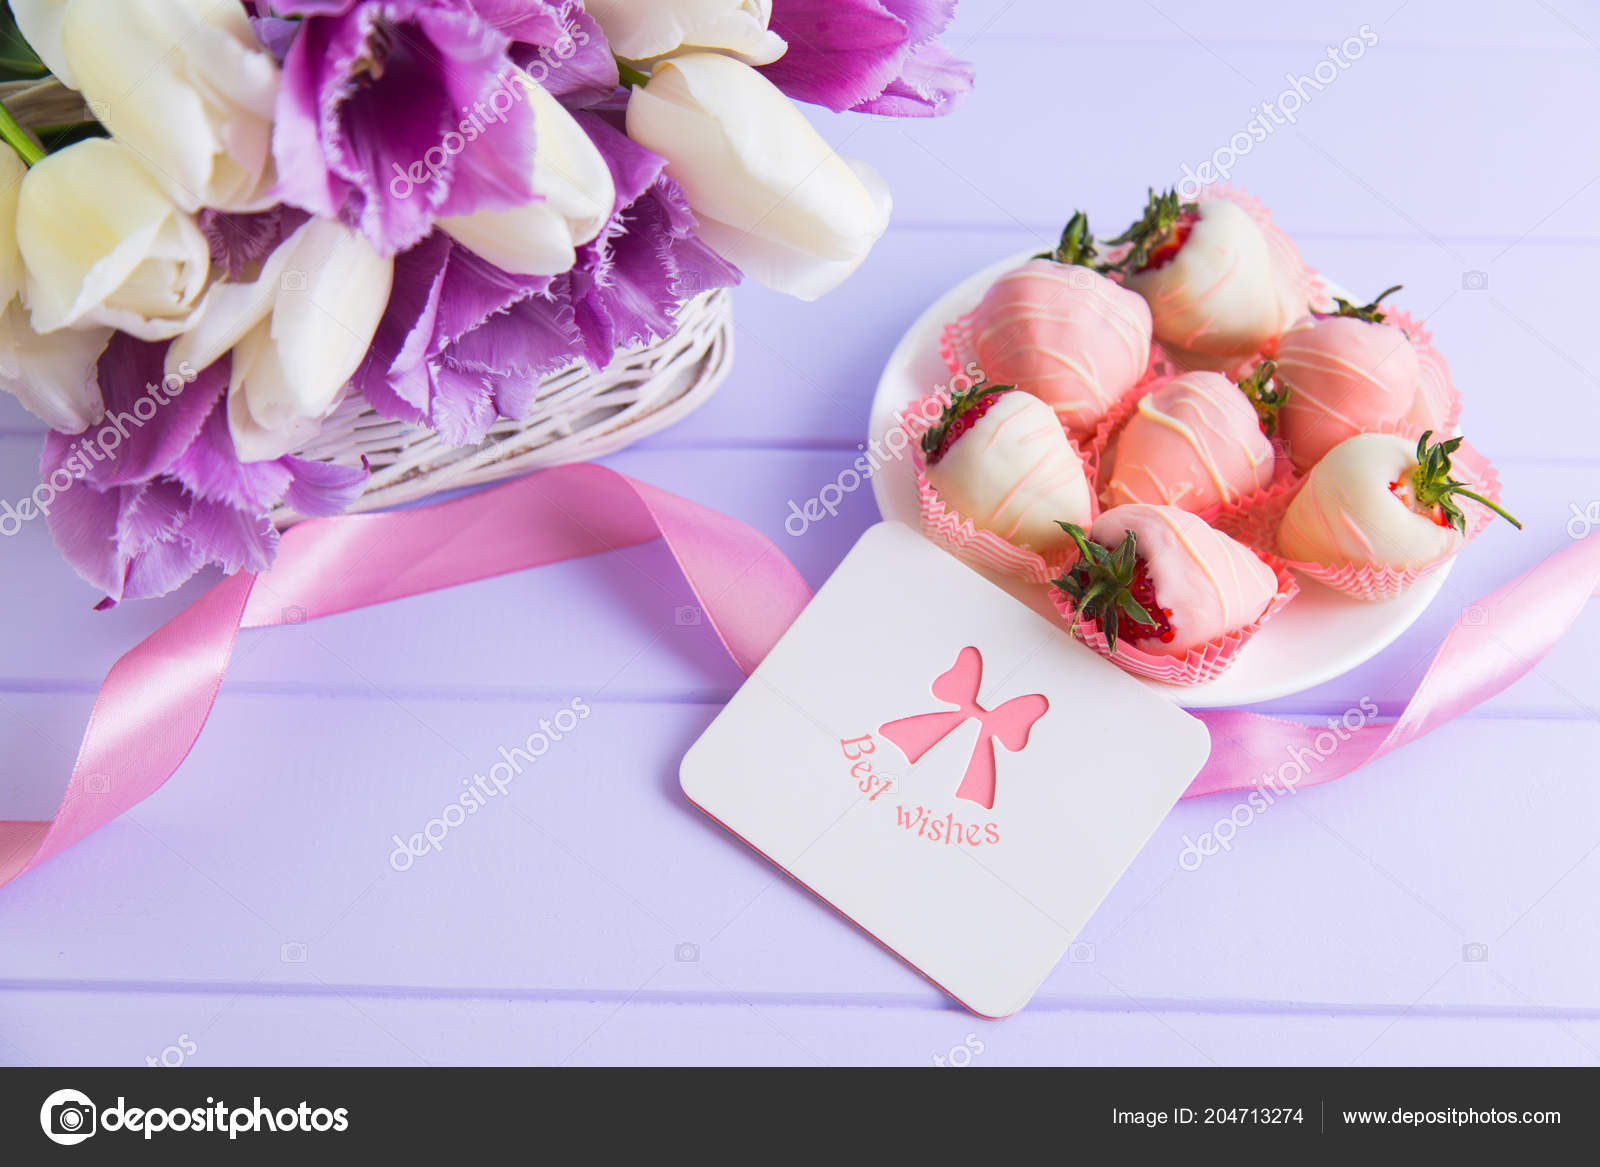 Greeting card strawberry chocolate plate pink ribbon bouquet purple greeting card strawberry chocolate plate pink ribbon bouquet purple white fotografia de stock junglespirit Choice Image